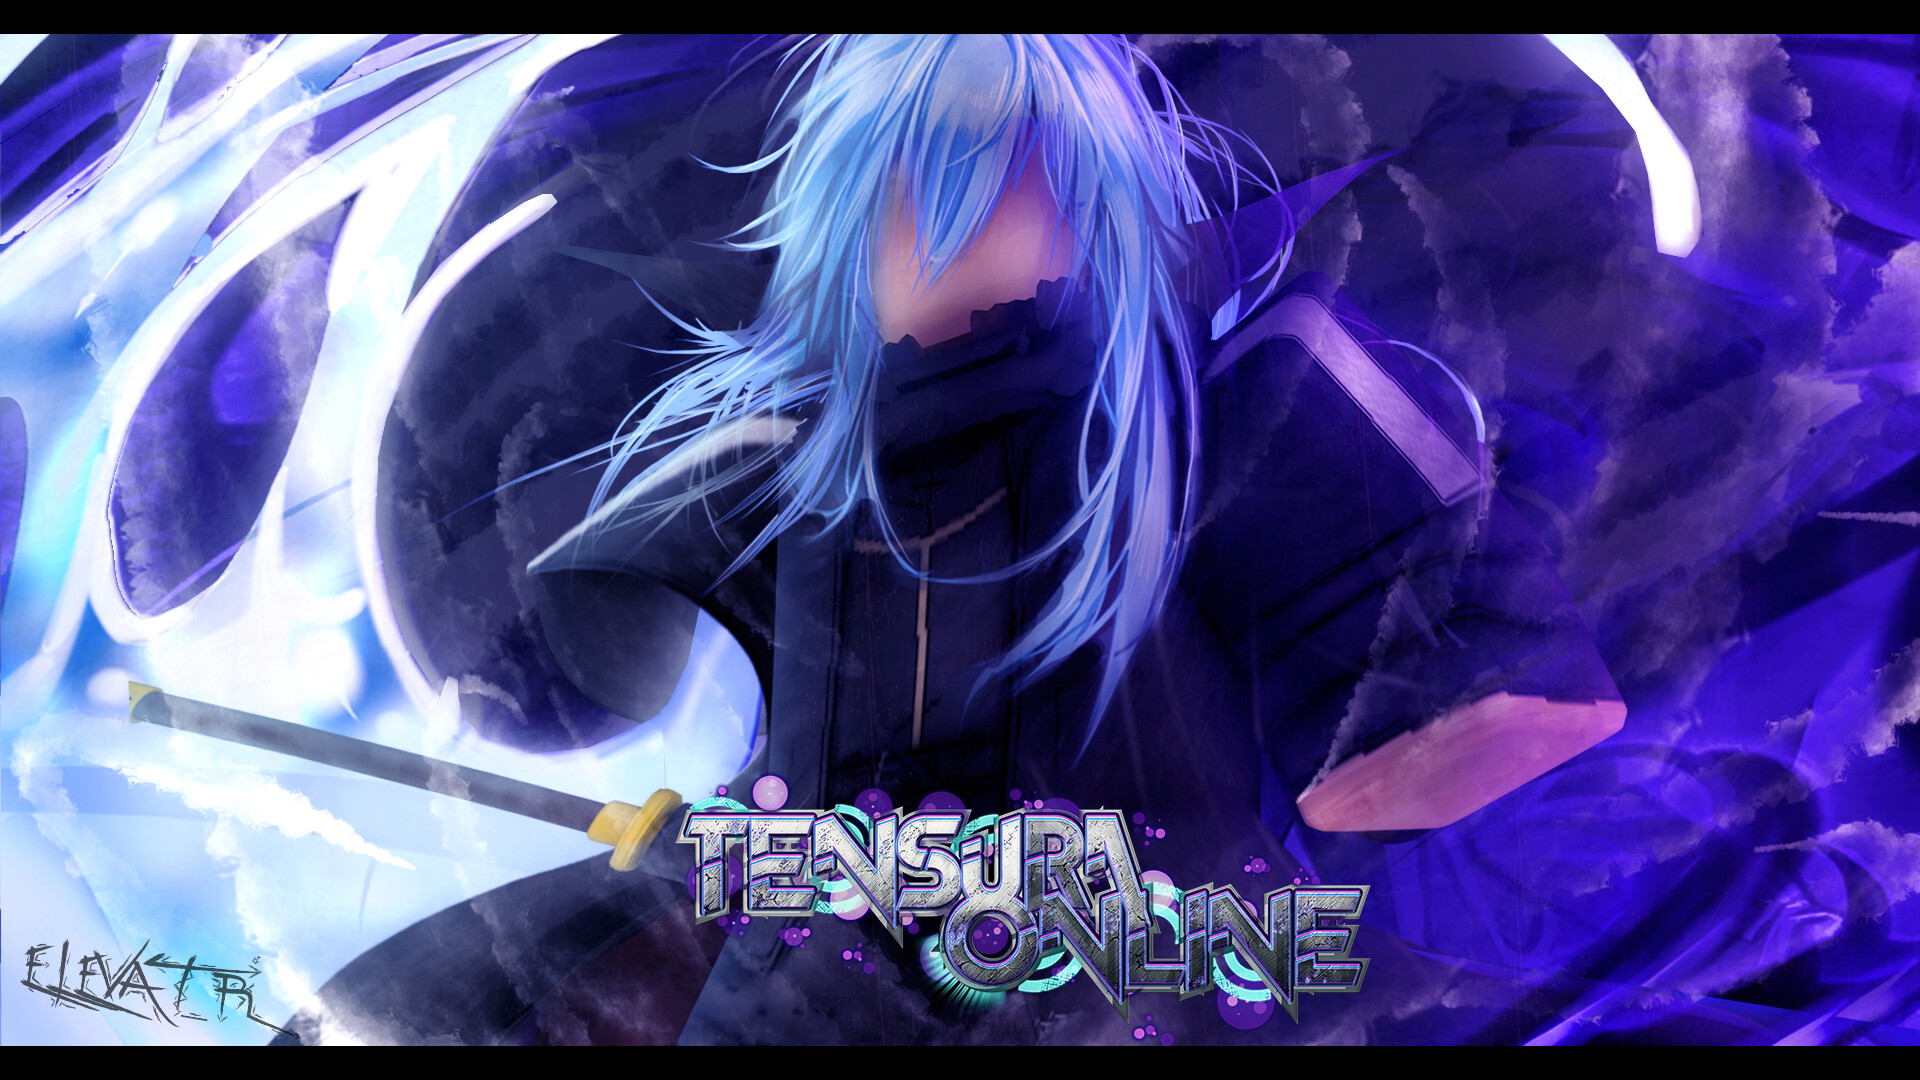 You can also upload and share your favorite rimuru tempest hd android wallpapers. Rimuru Tempest Wallpaper Hd Sekali